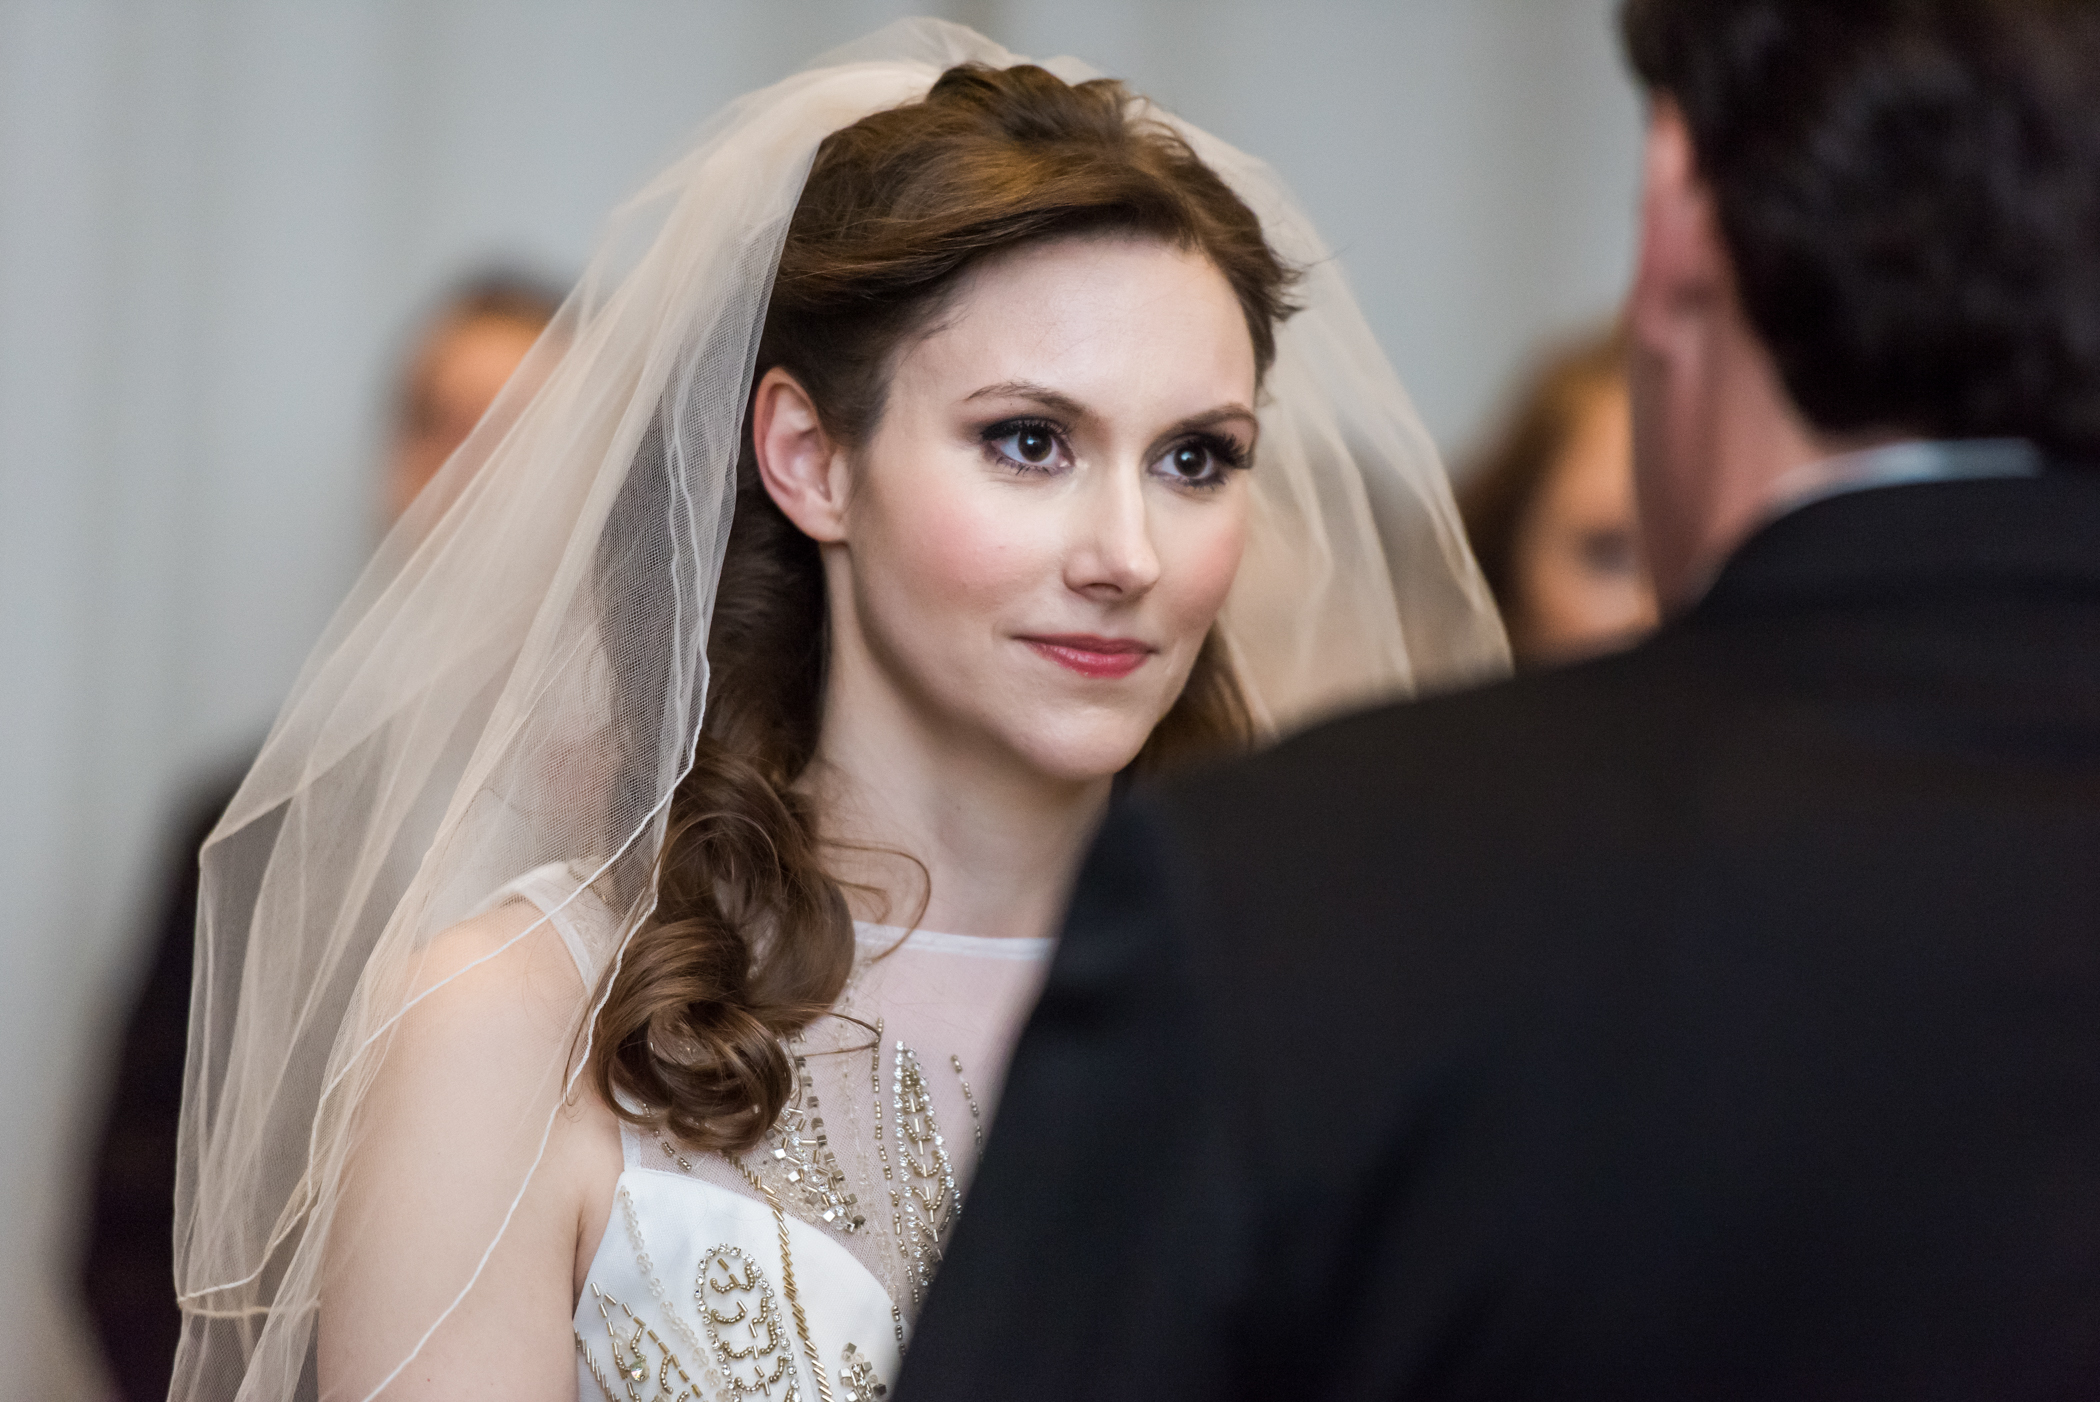 Stefy Hilmer Photography-bride looking at her groom during the wedding ceremony.jpg